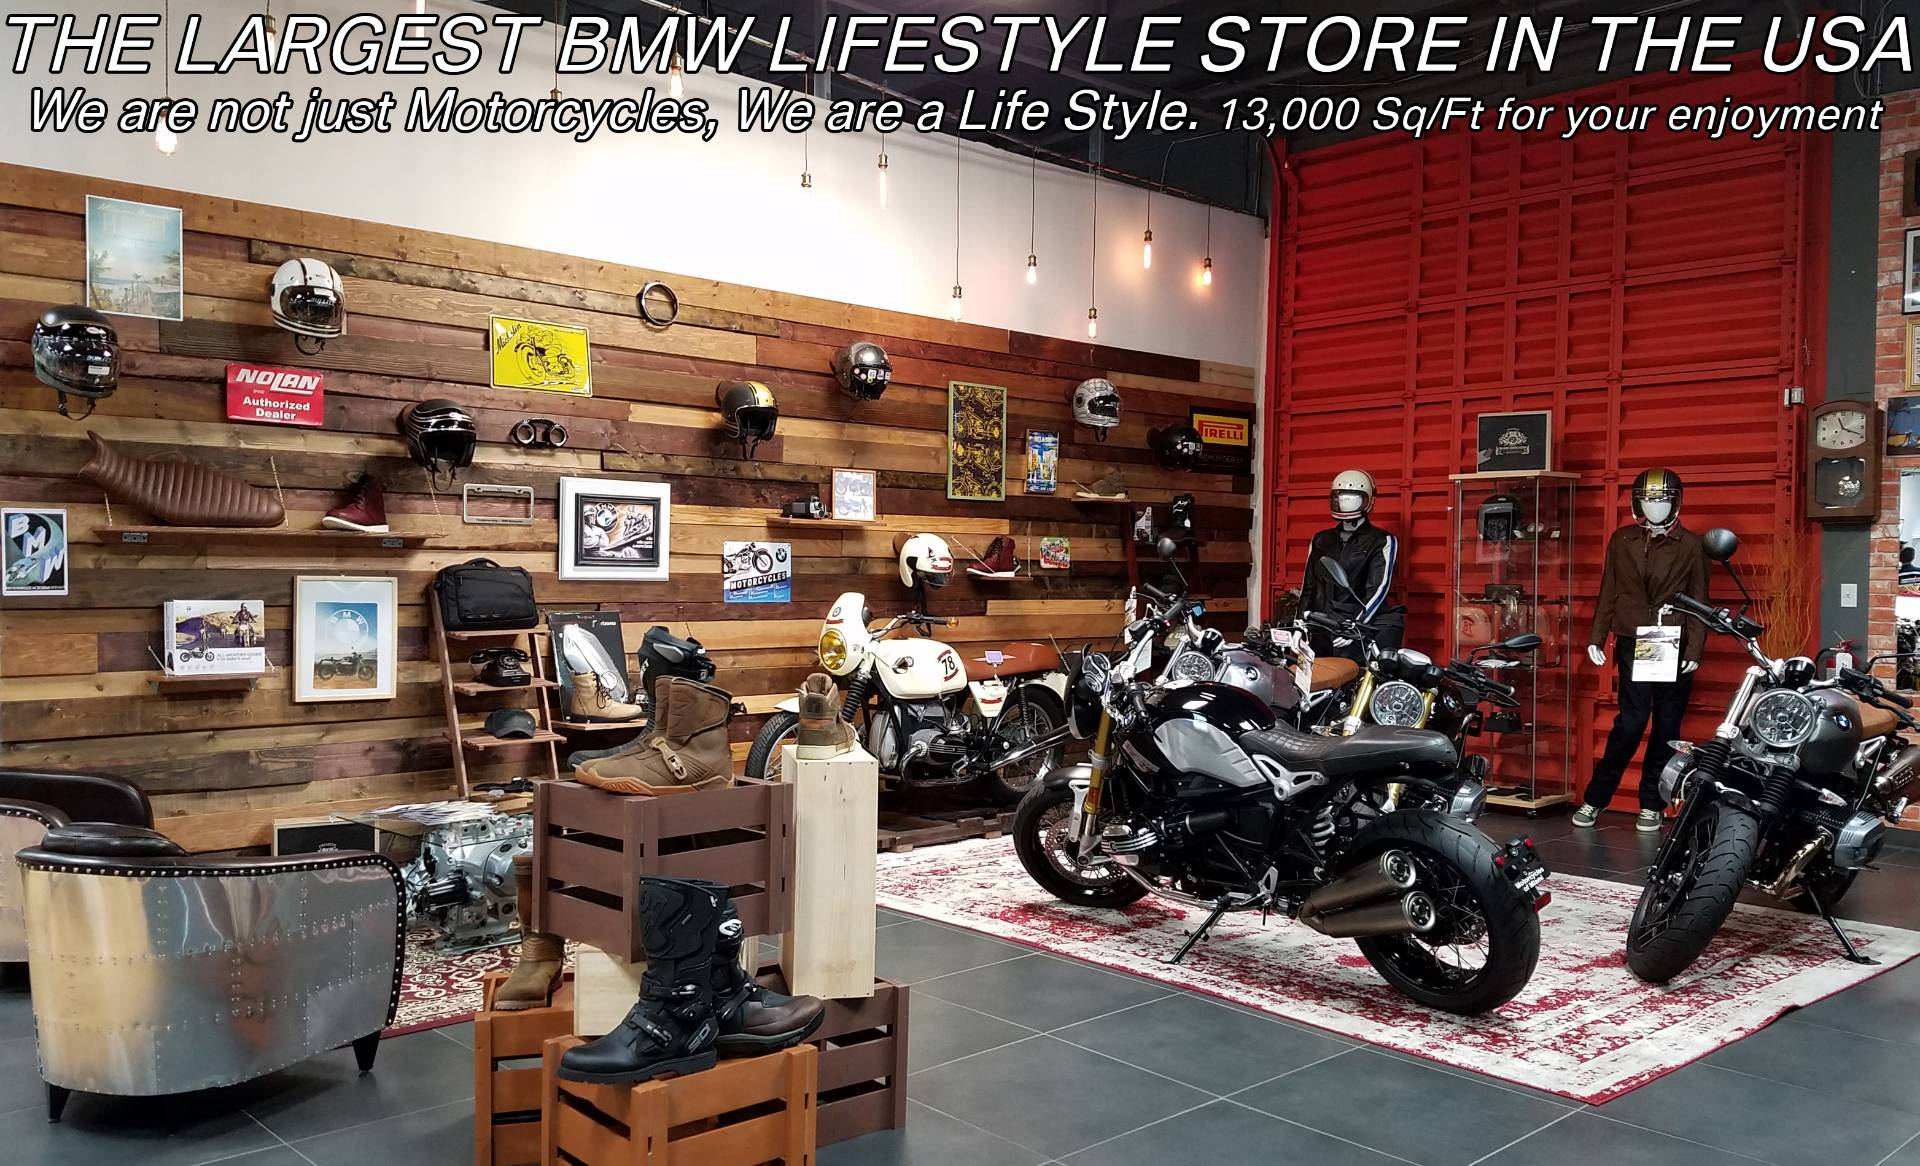 New 2019 BMW R 1250 GS for sale, New BMW R 1250GS, BMW R1250GS for sale, 1250GS, R1250GS, BMW Motorcycles of Miami, Motorcycles of Miami. Motorcycles Miami - Photo 50